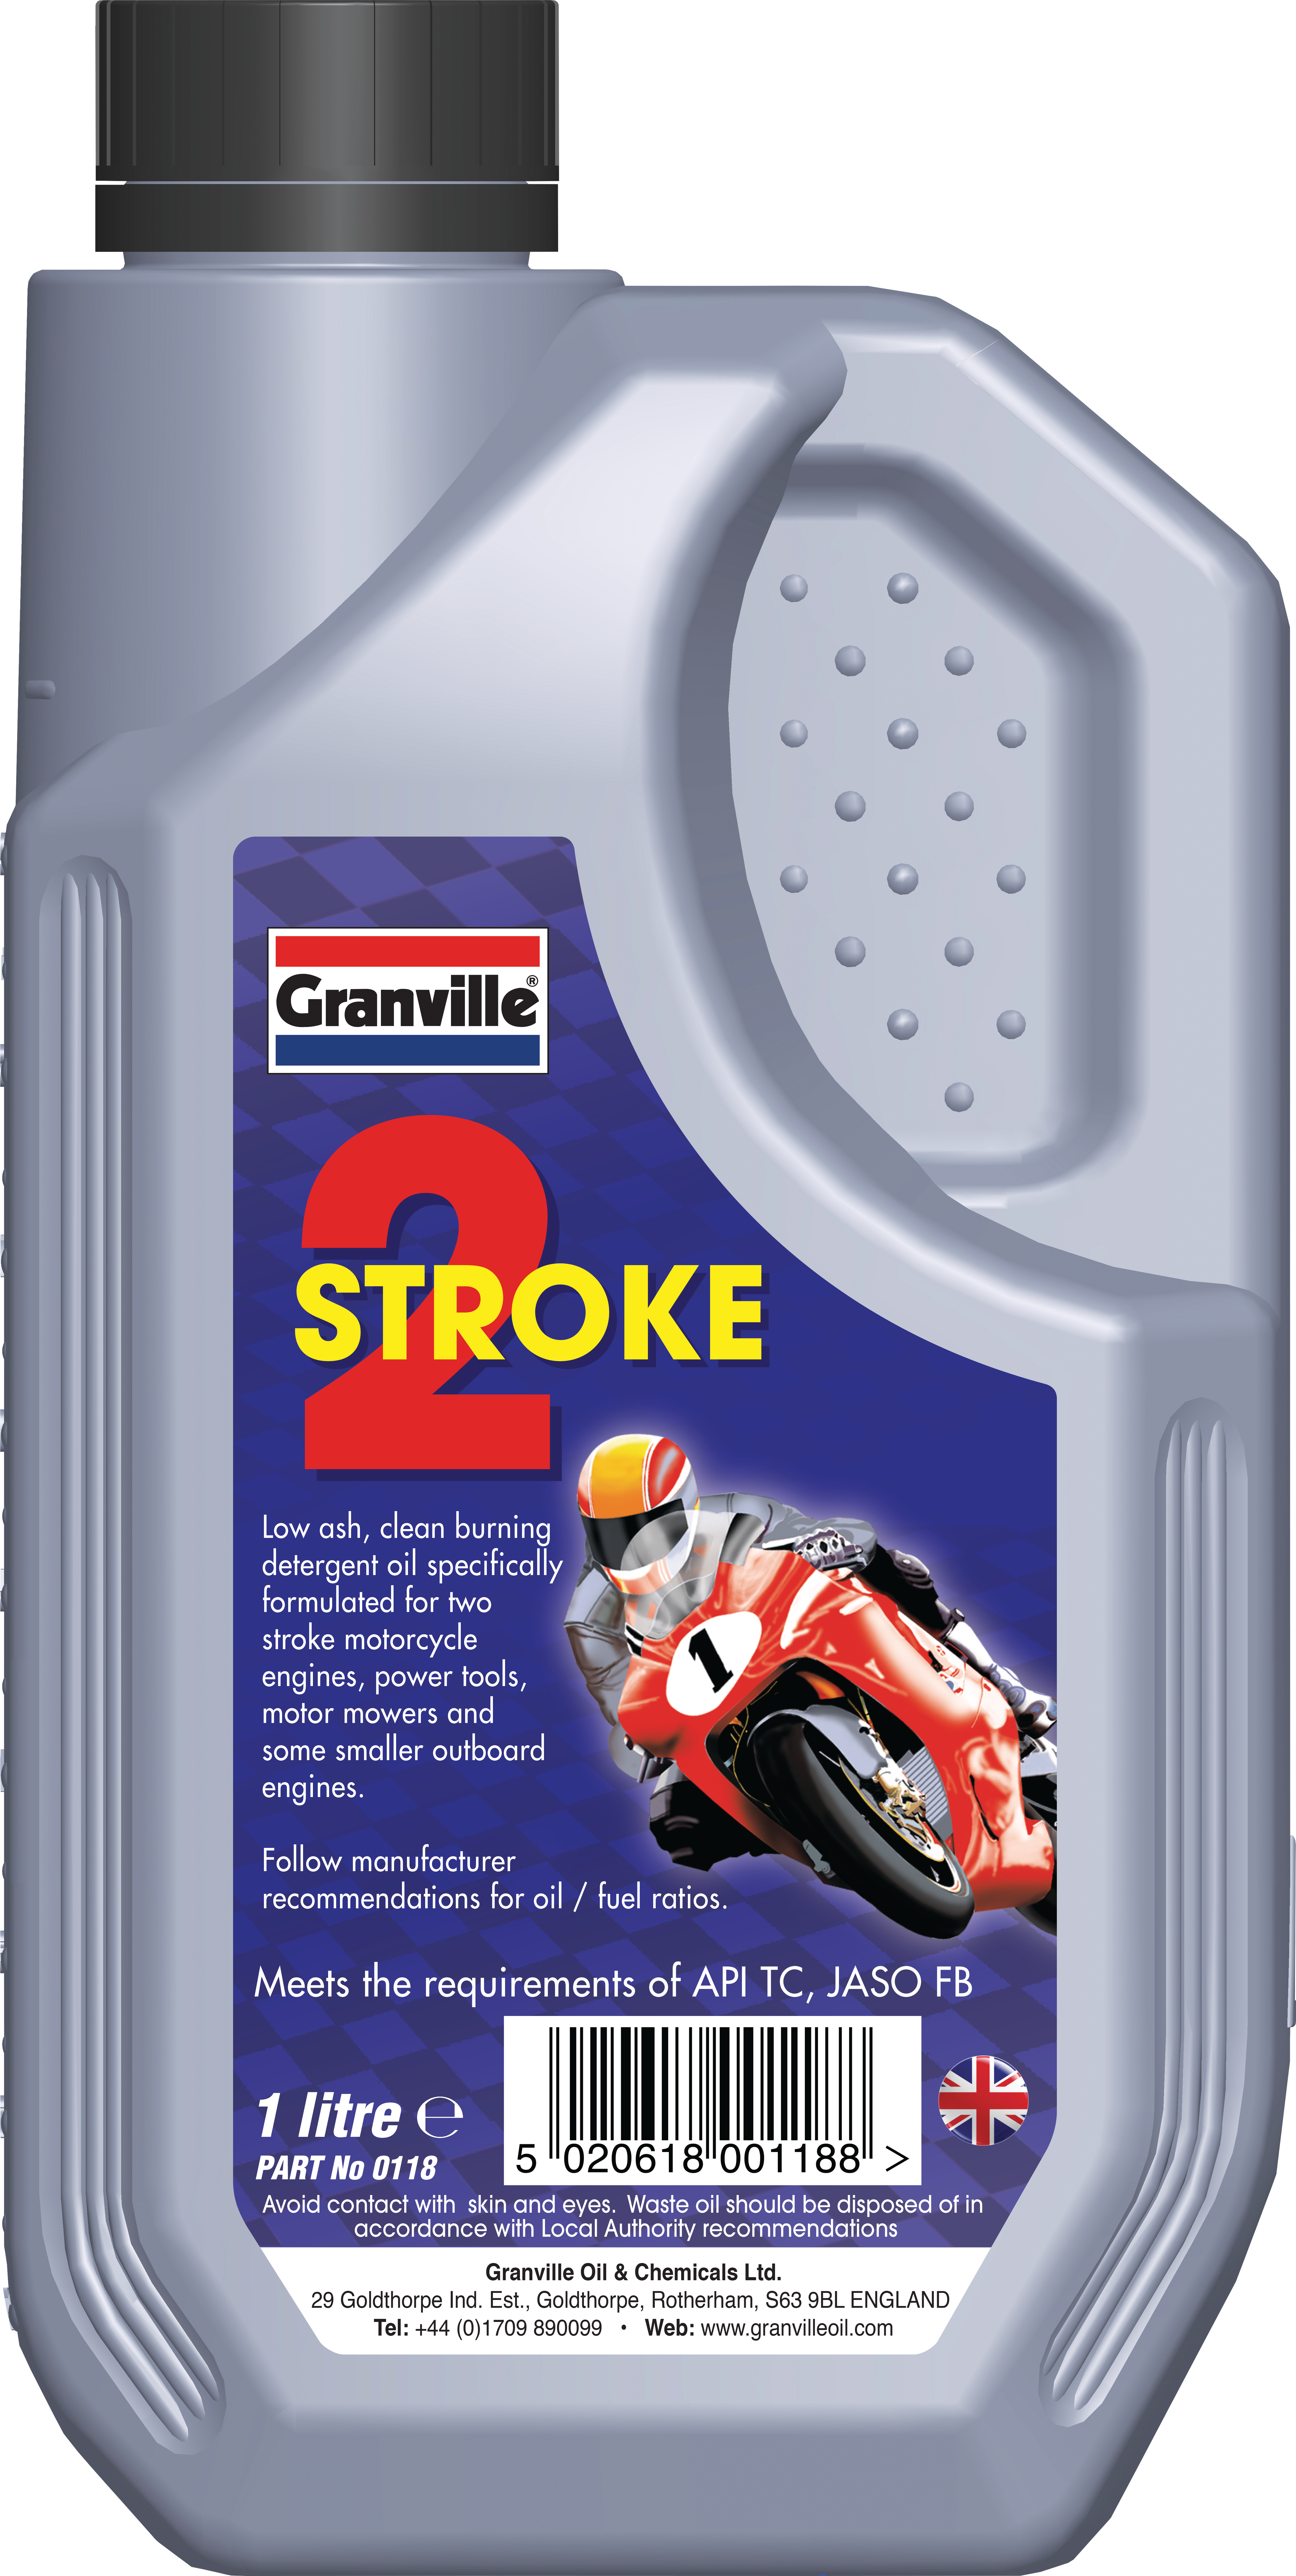 Granville | Product Information